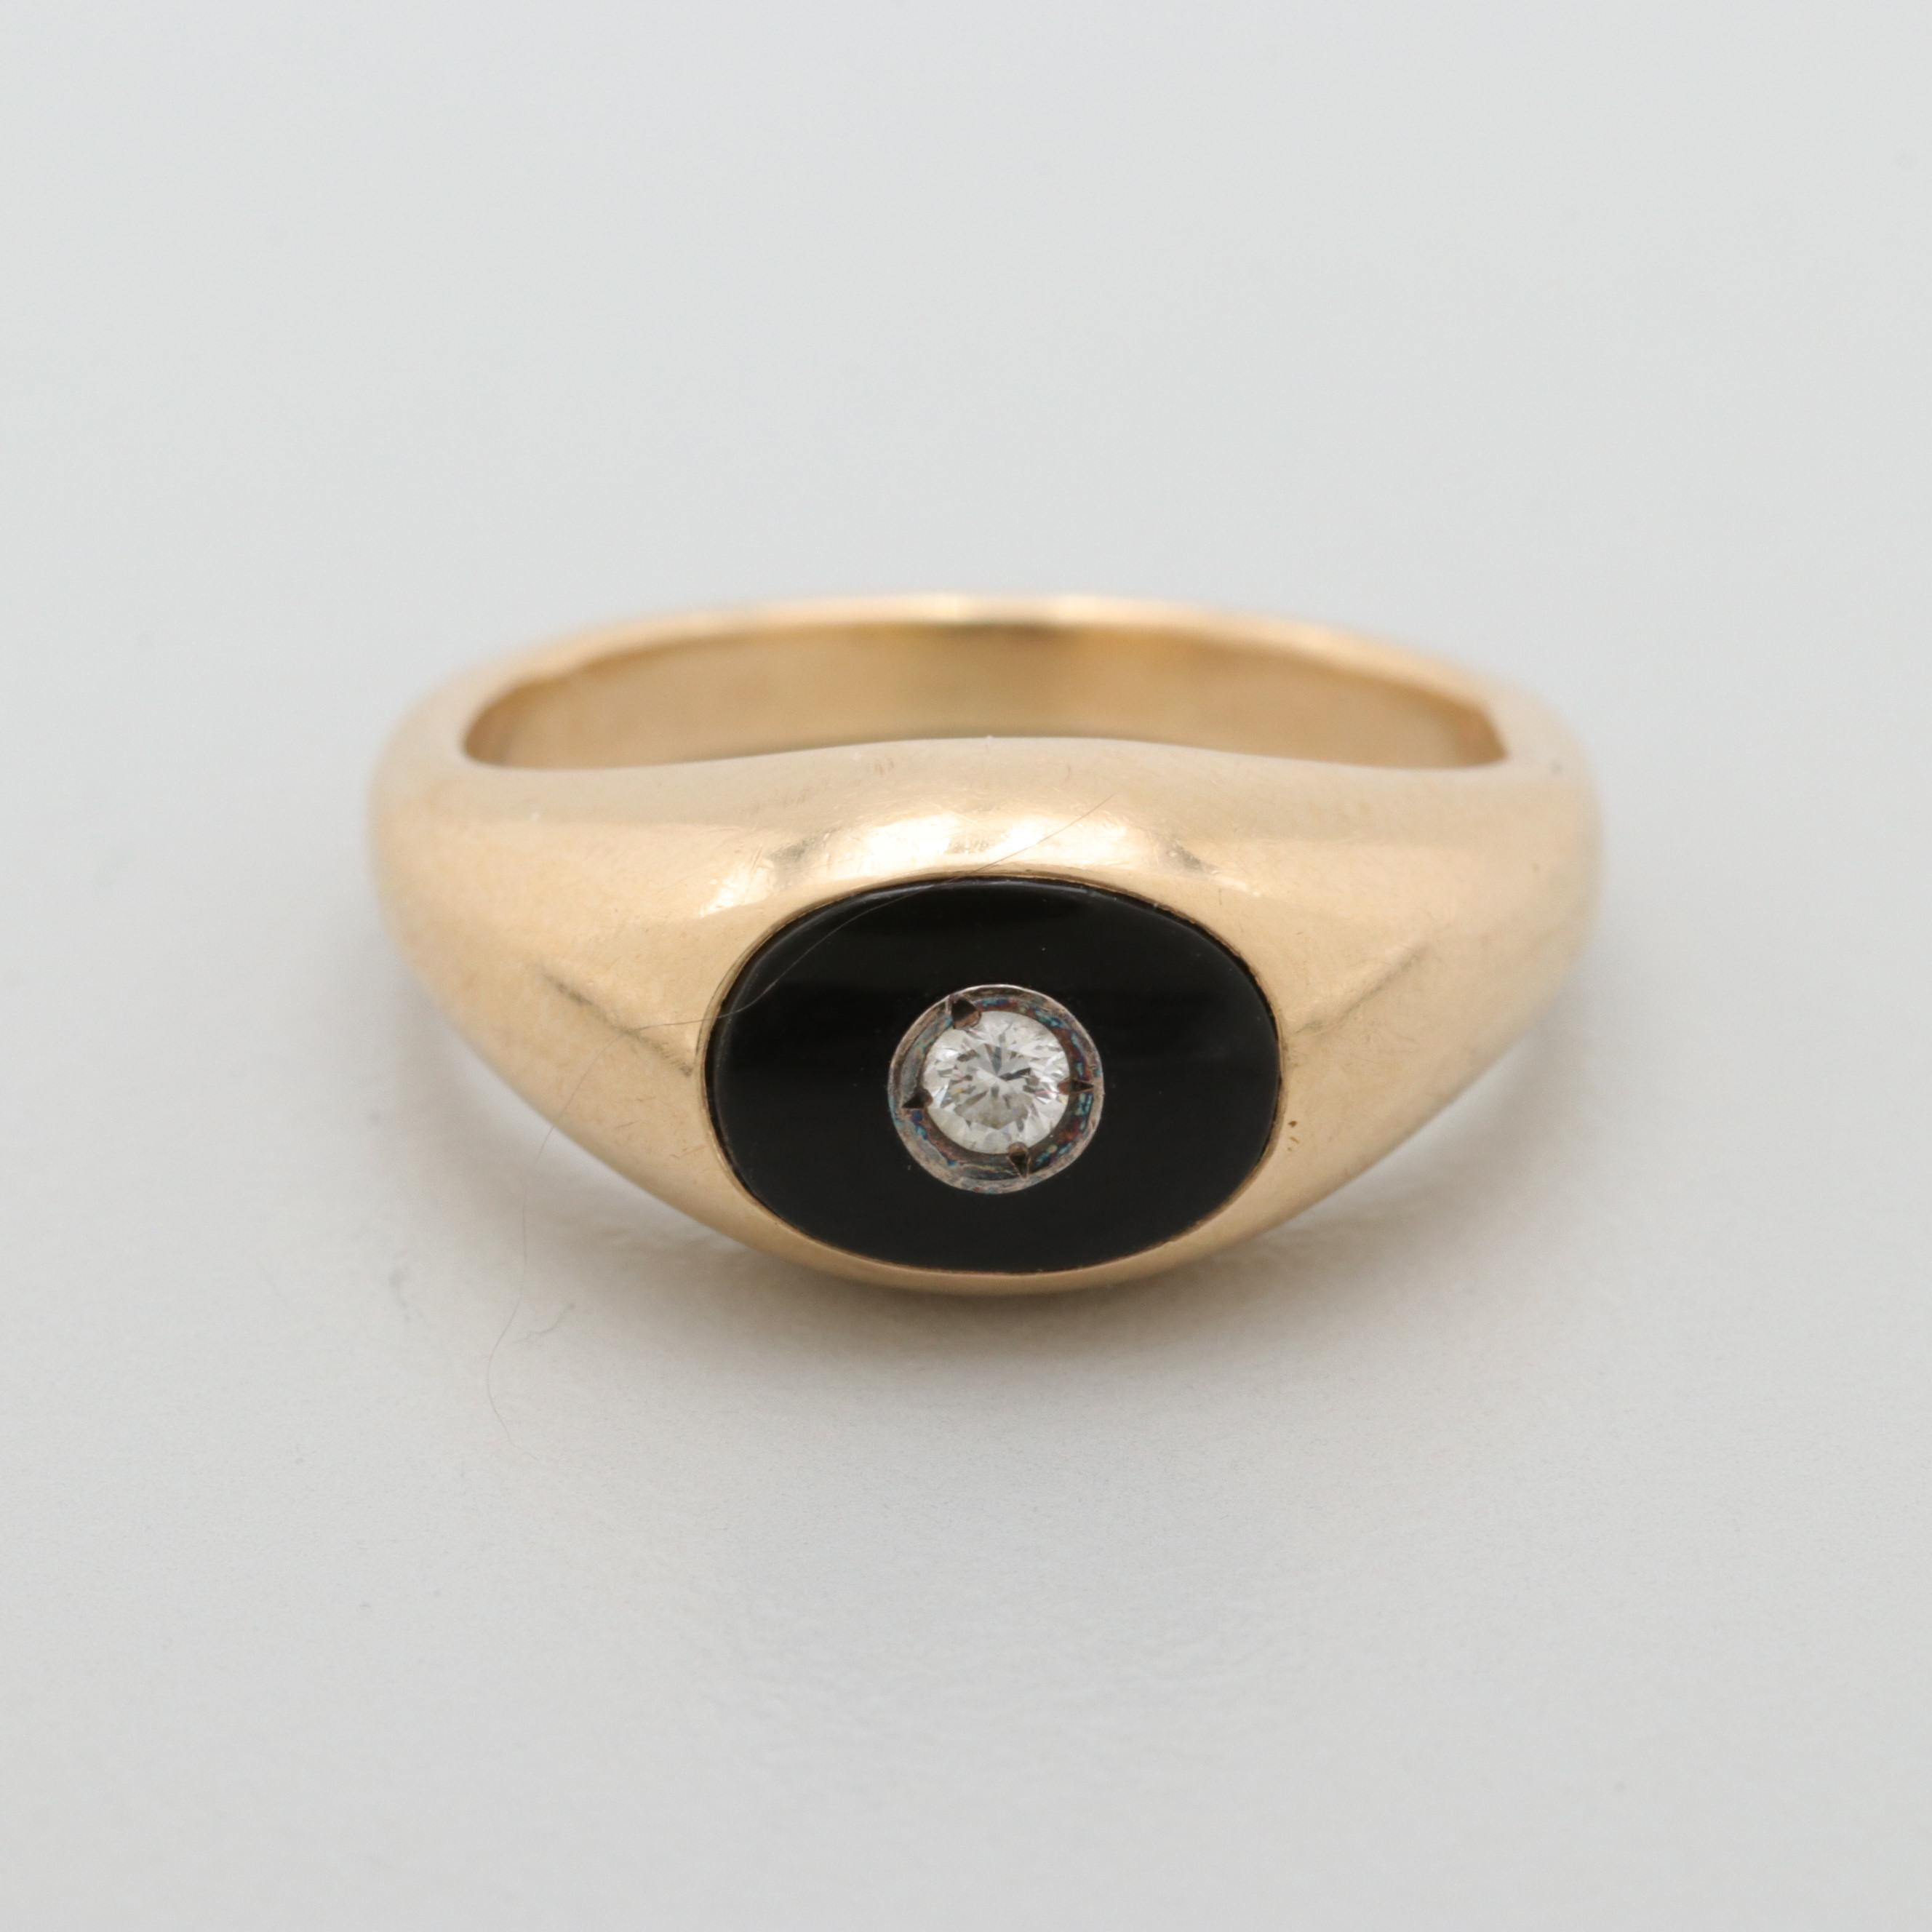 Vintage 14K Yellow Gold Diamond and Black Onyx Ring